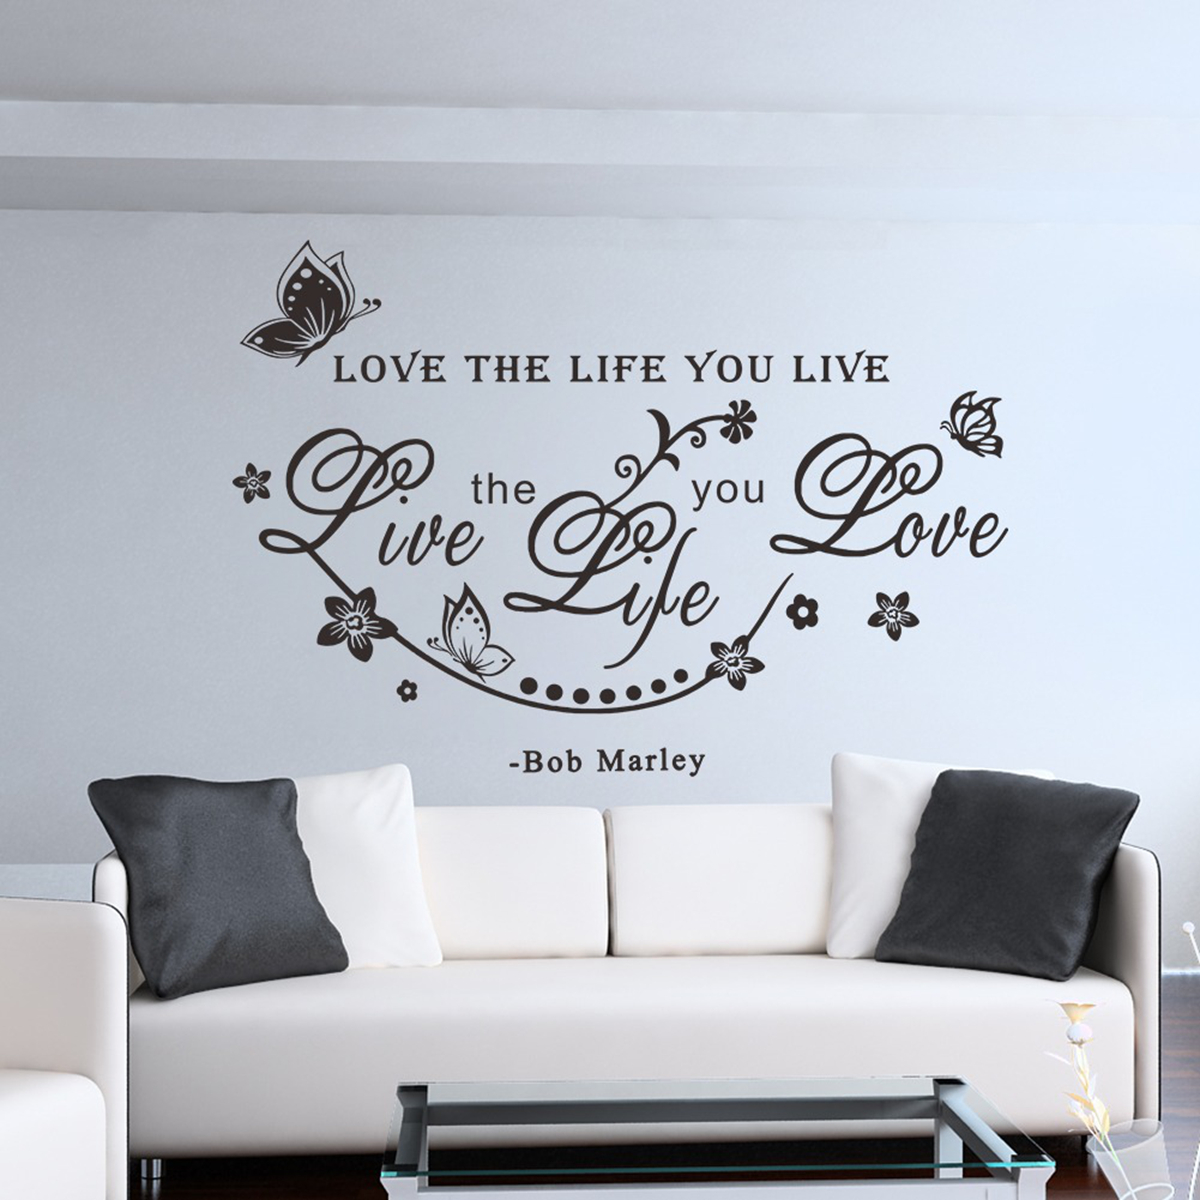 wandtattoo wandsticker wandaufkleber wohnzimmer englisch wort spruch sticker neu. Black Bedroom Furniture Sets. Home Design Ideas